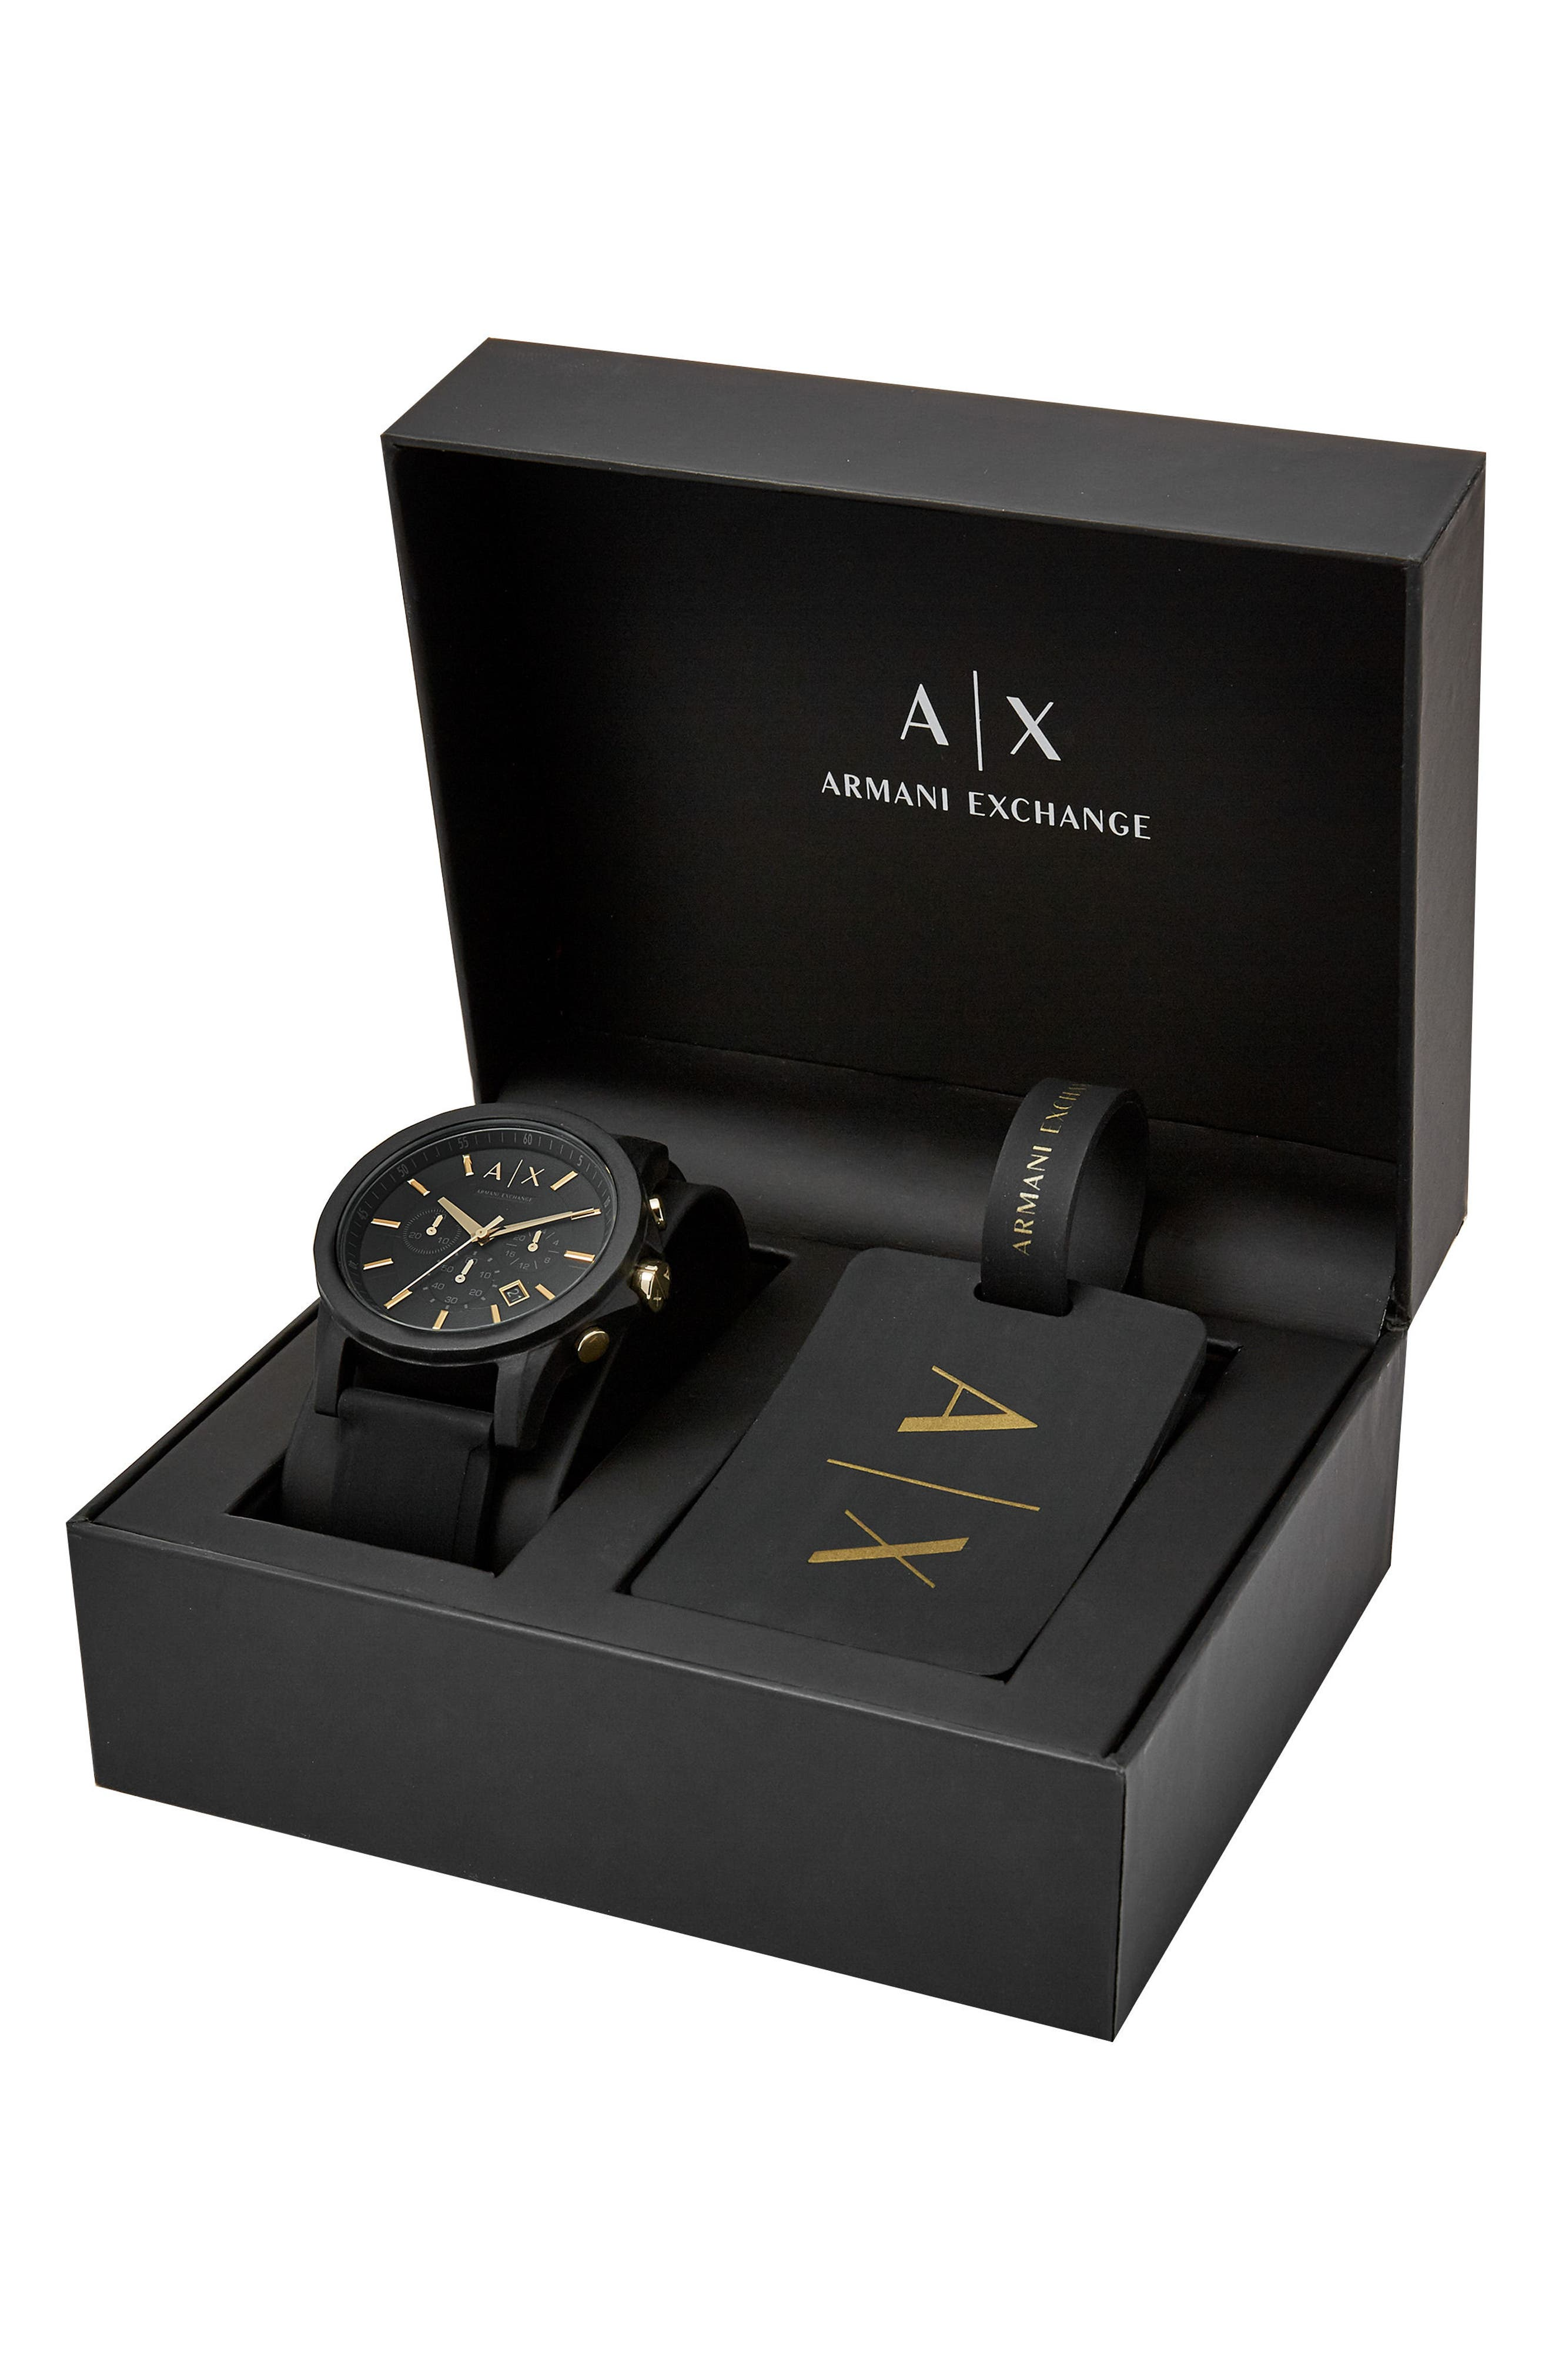 AX ARMANI EXCHANGE, Boxed Chronograph Silicone Strap Watch Gift Set, 45mm, Alternate thumbnail 3, color, 001